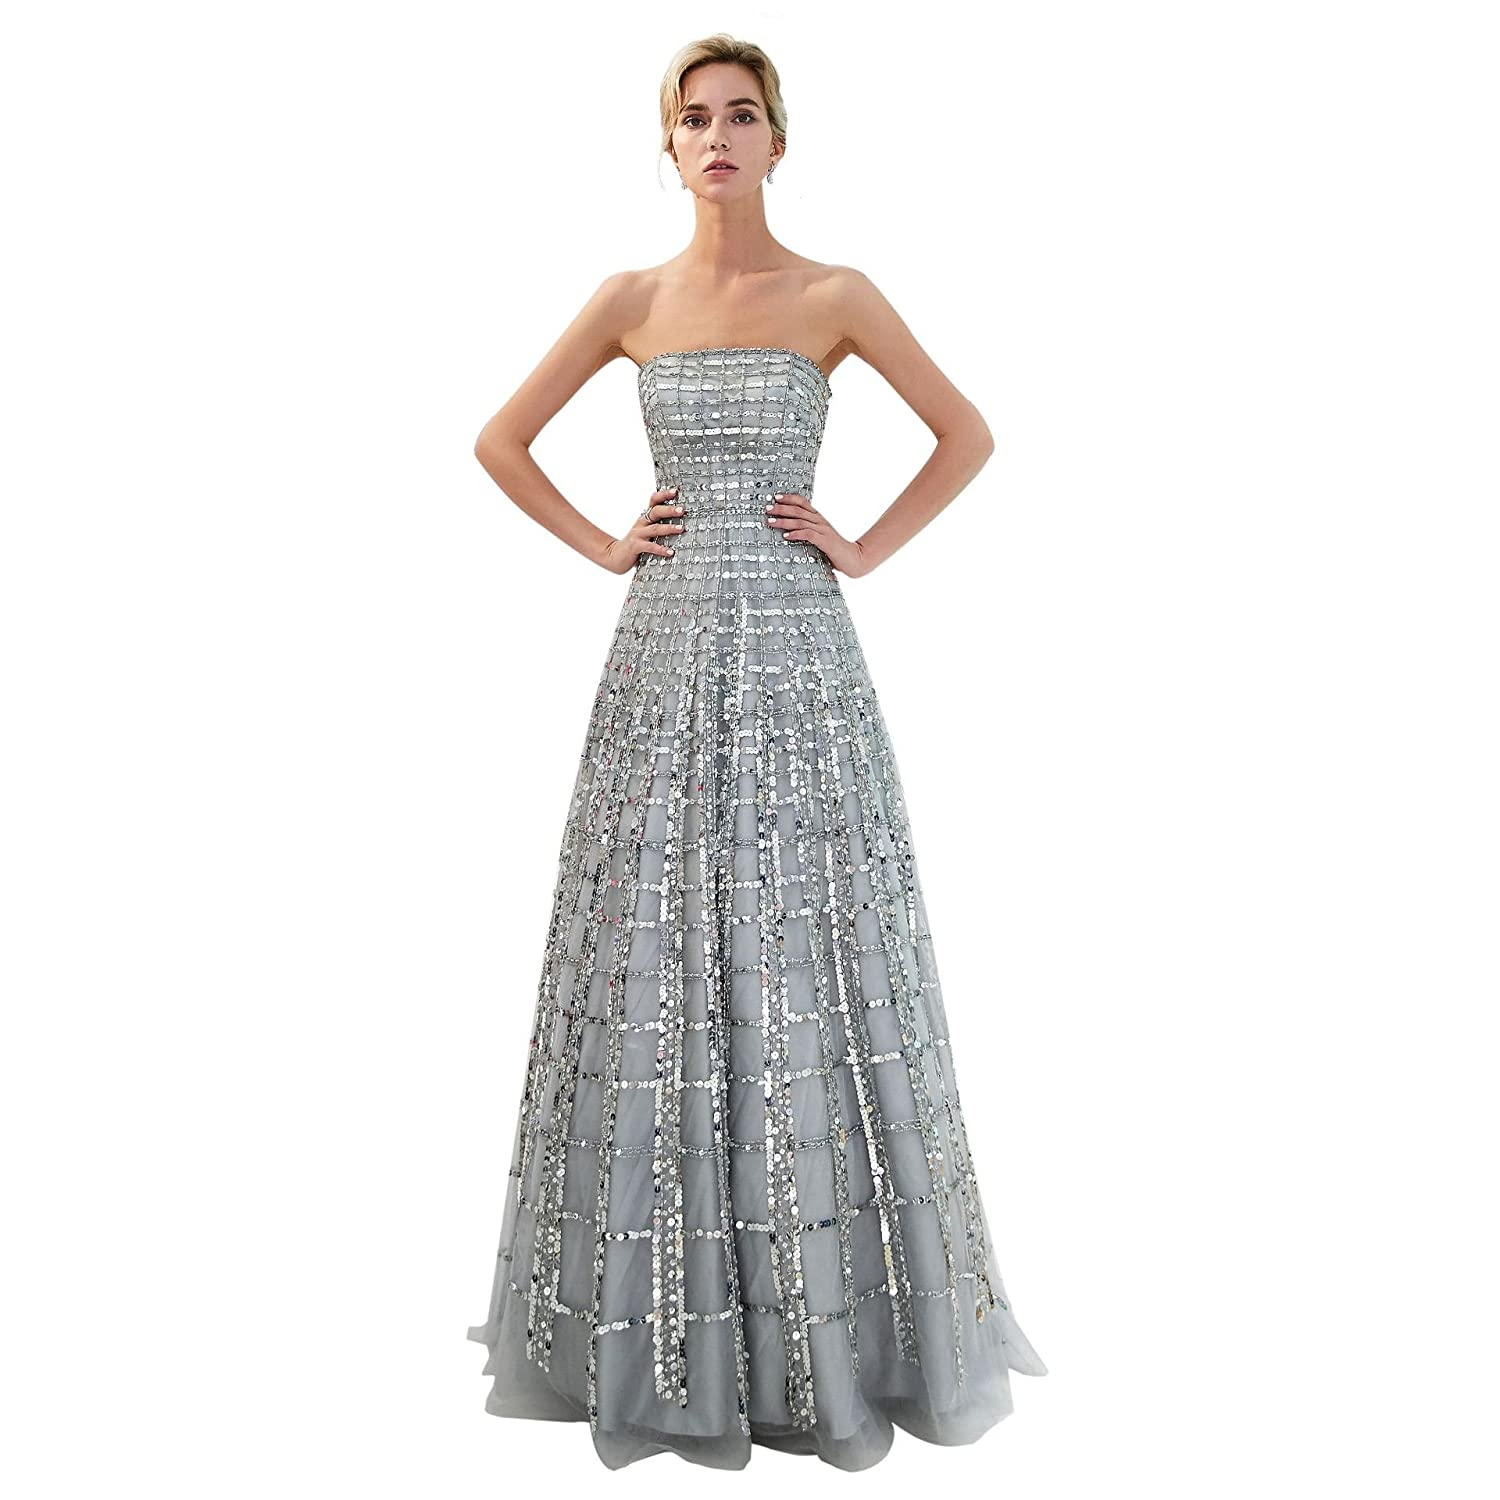 1f2390c87f7e Trendership Women's Elegant Strapless A-line Prom Dress Long Sequin Tulle Formal  Gown at Amazon Women's Clothing store: